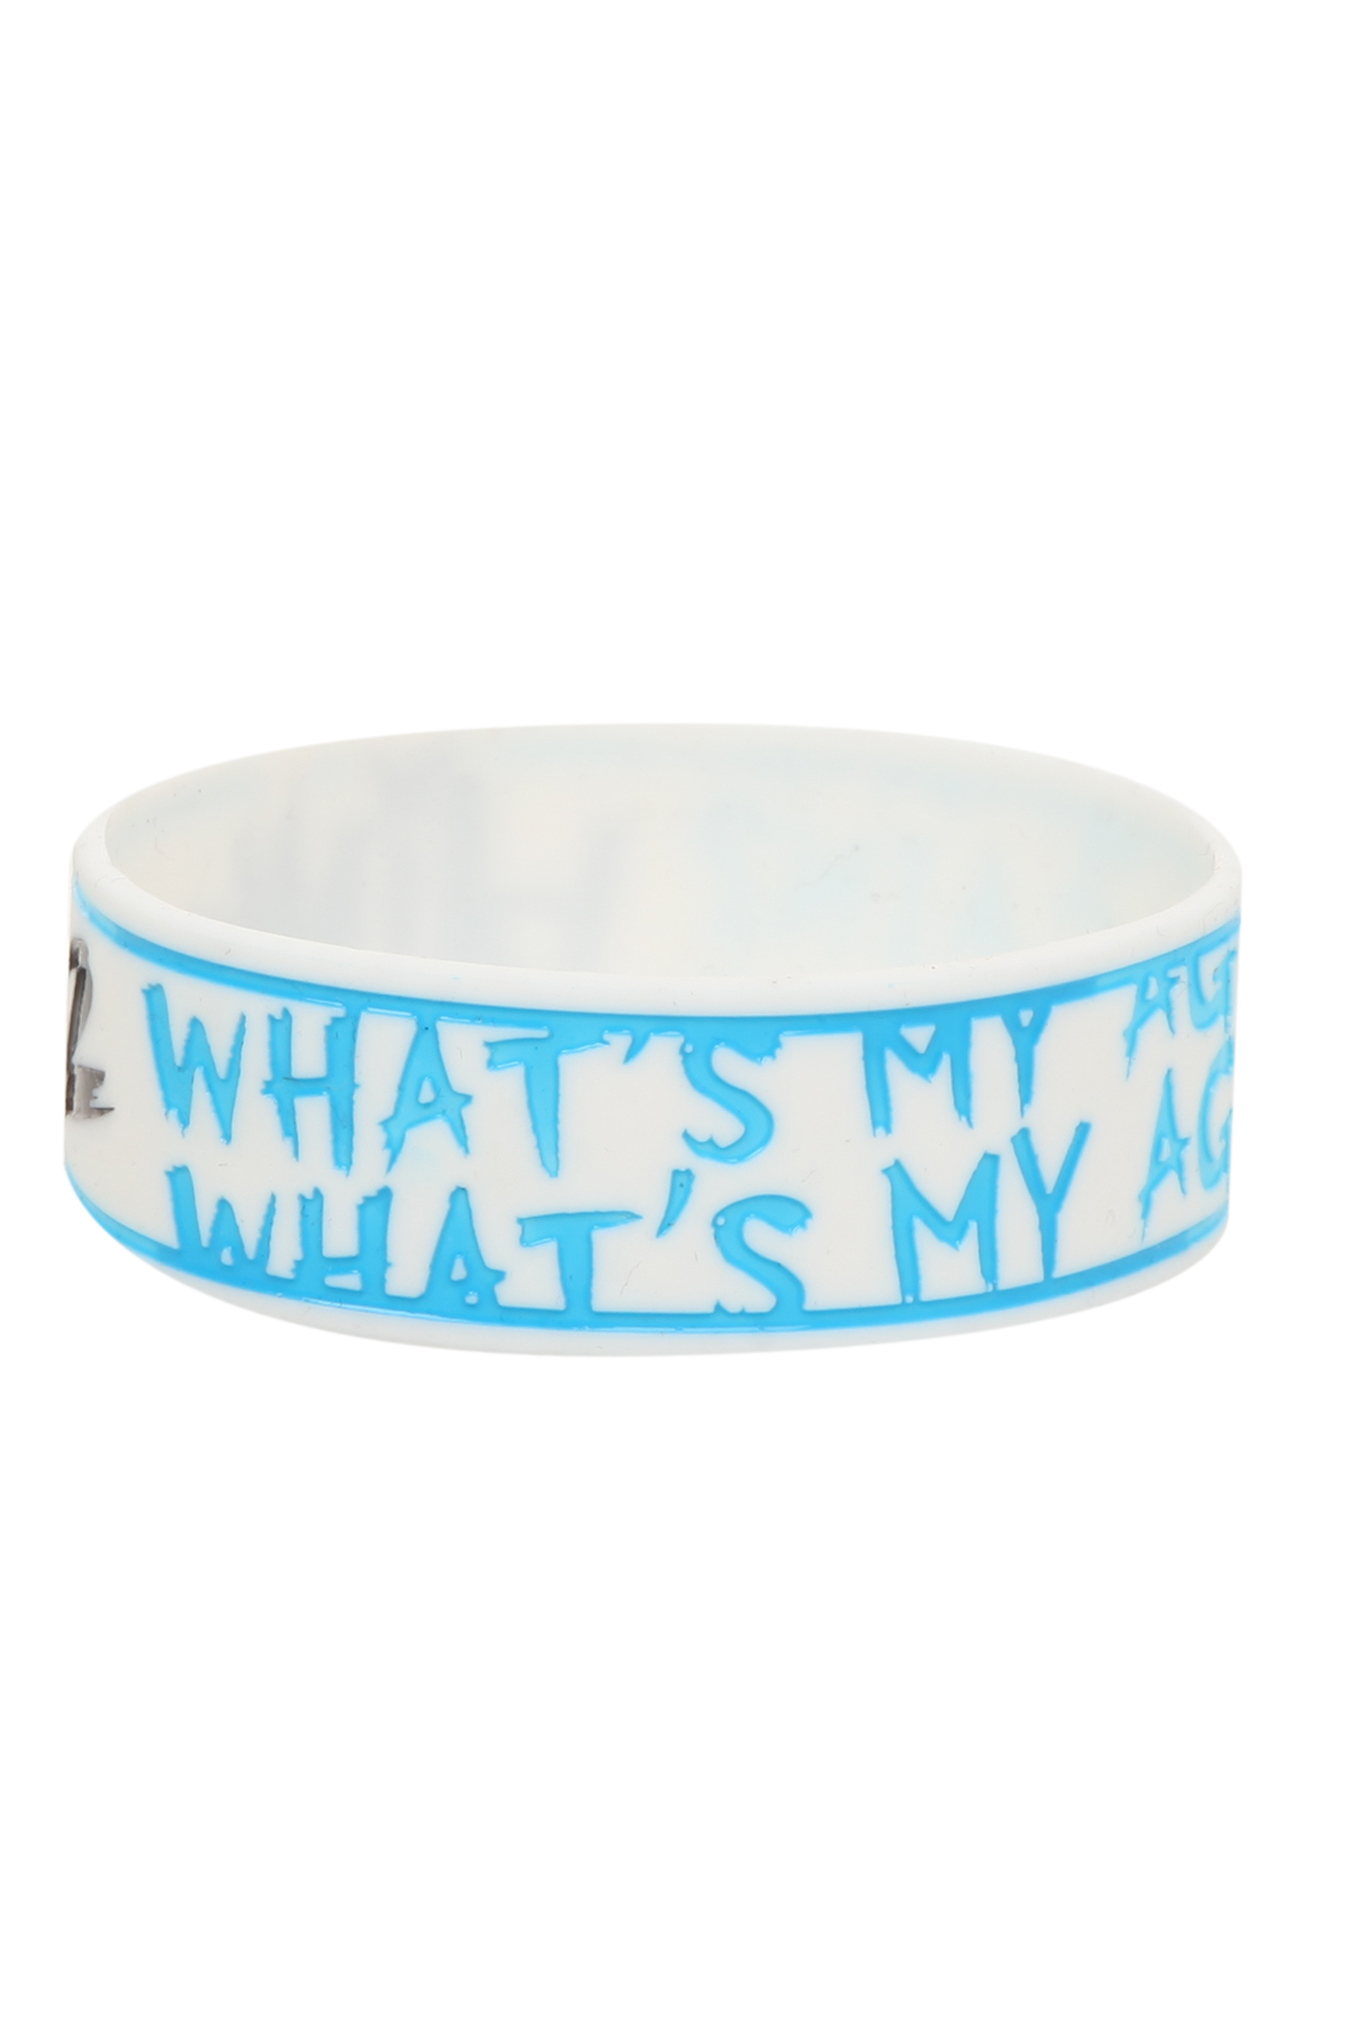 Blink-182 What's My Age Again? Rubber Bracelet | Hot Topic